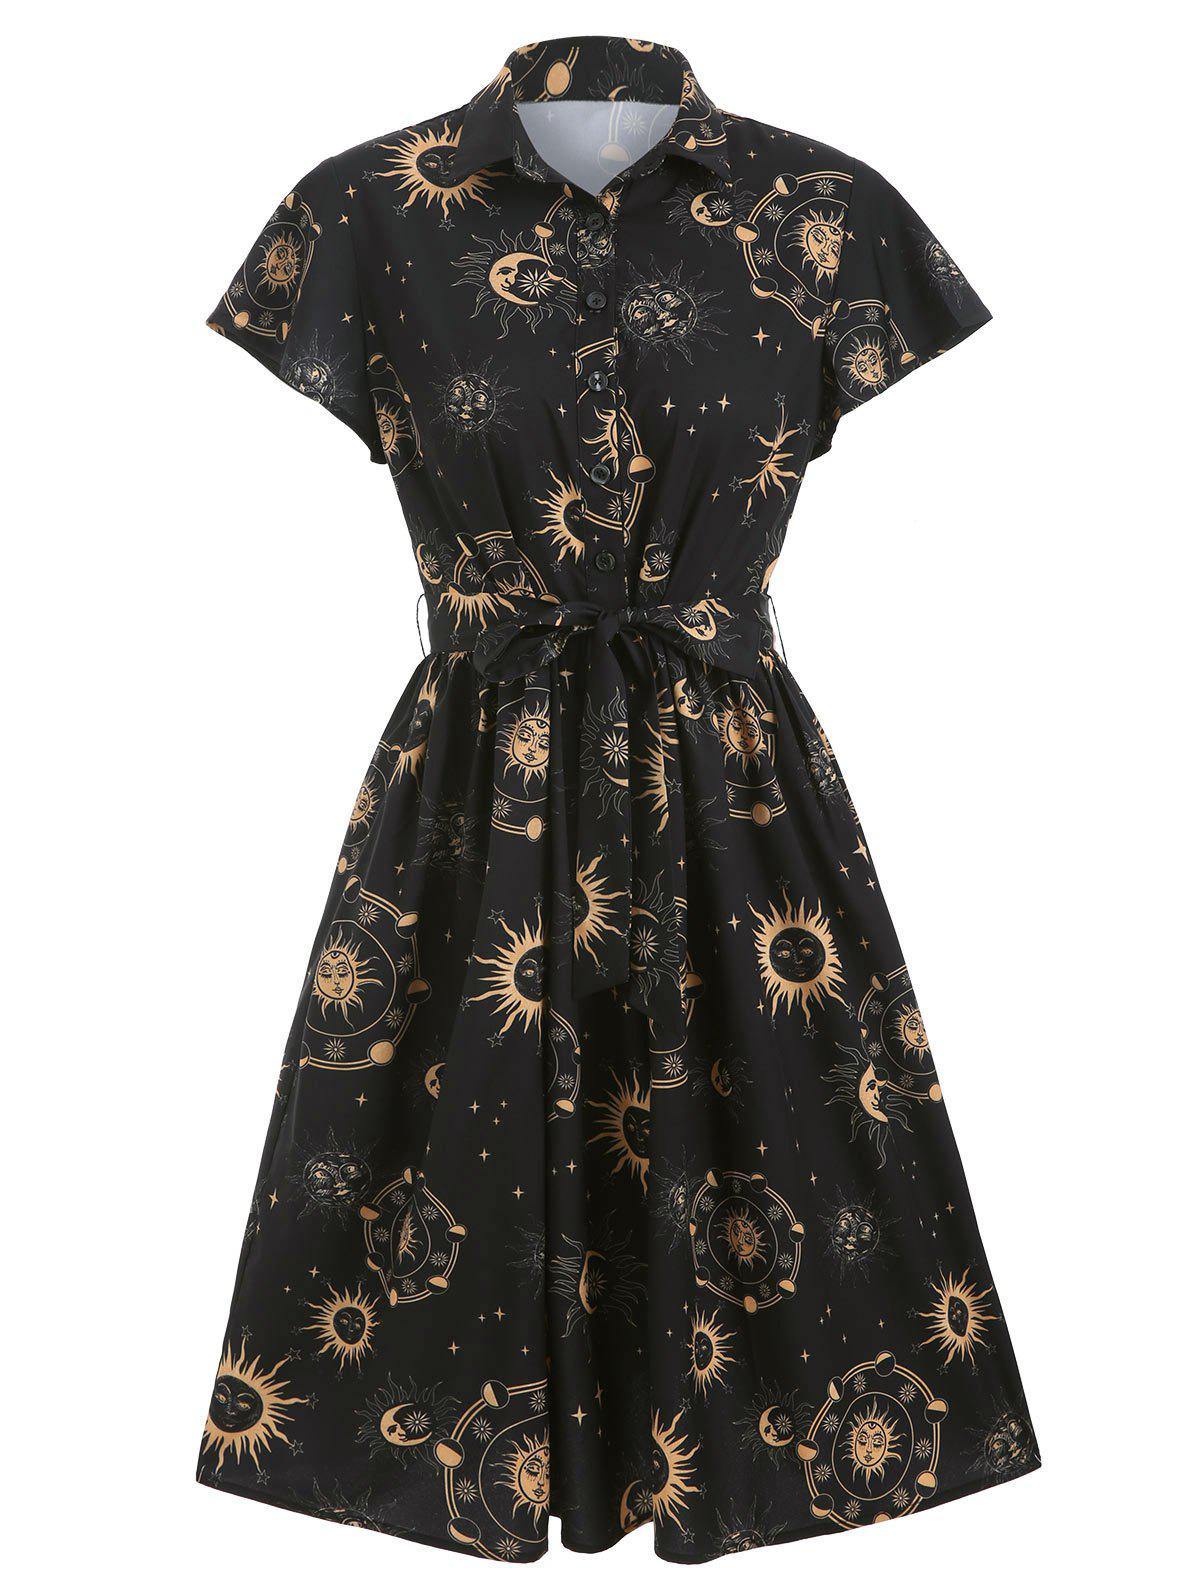 Sun Moon and Star Print Belted Button Dress - BLACK M